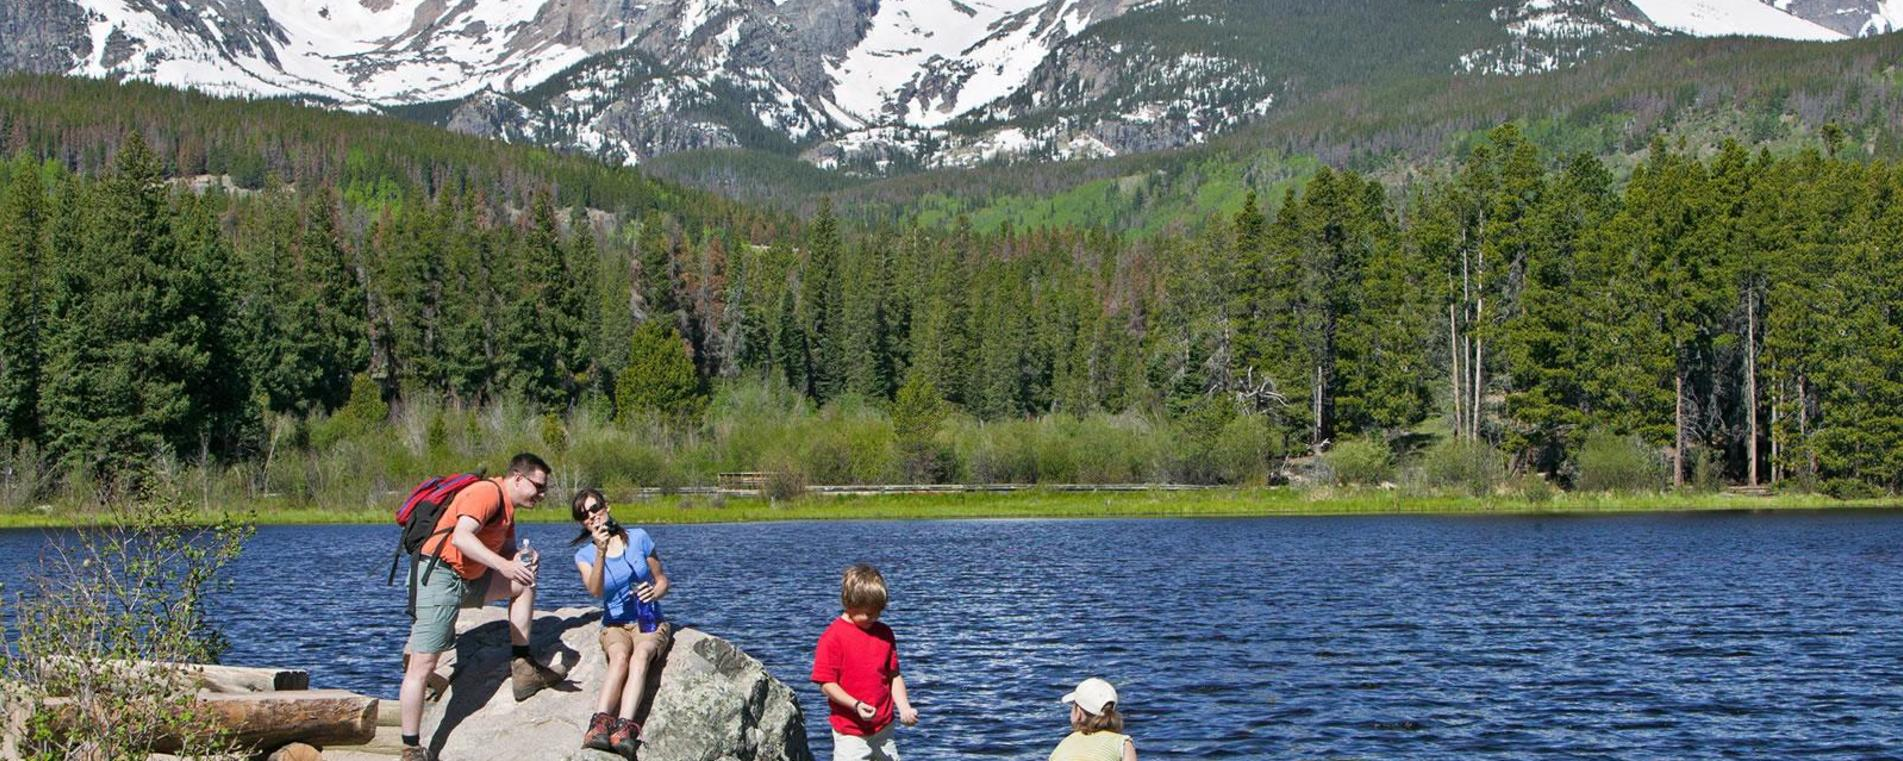 Estes Park is Perfect for Family Friendly Hiking